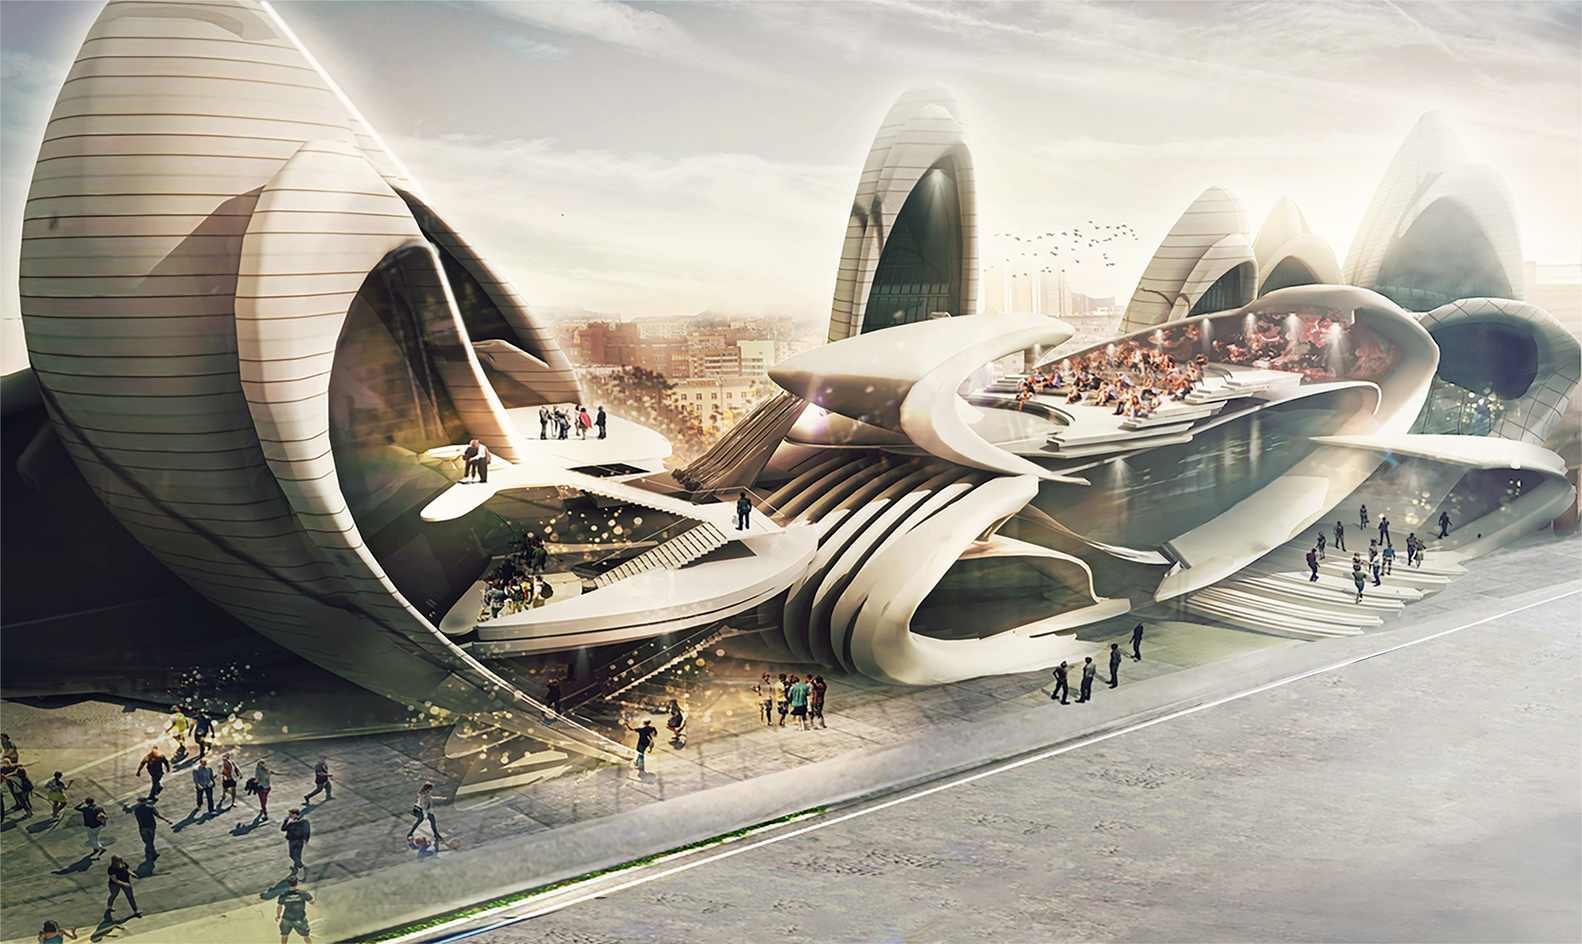 8 Conceptual Biomimicry projects that did not see the light of day - Sheet20